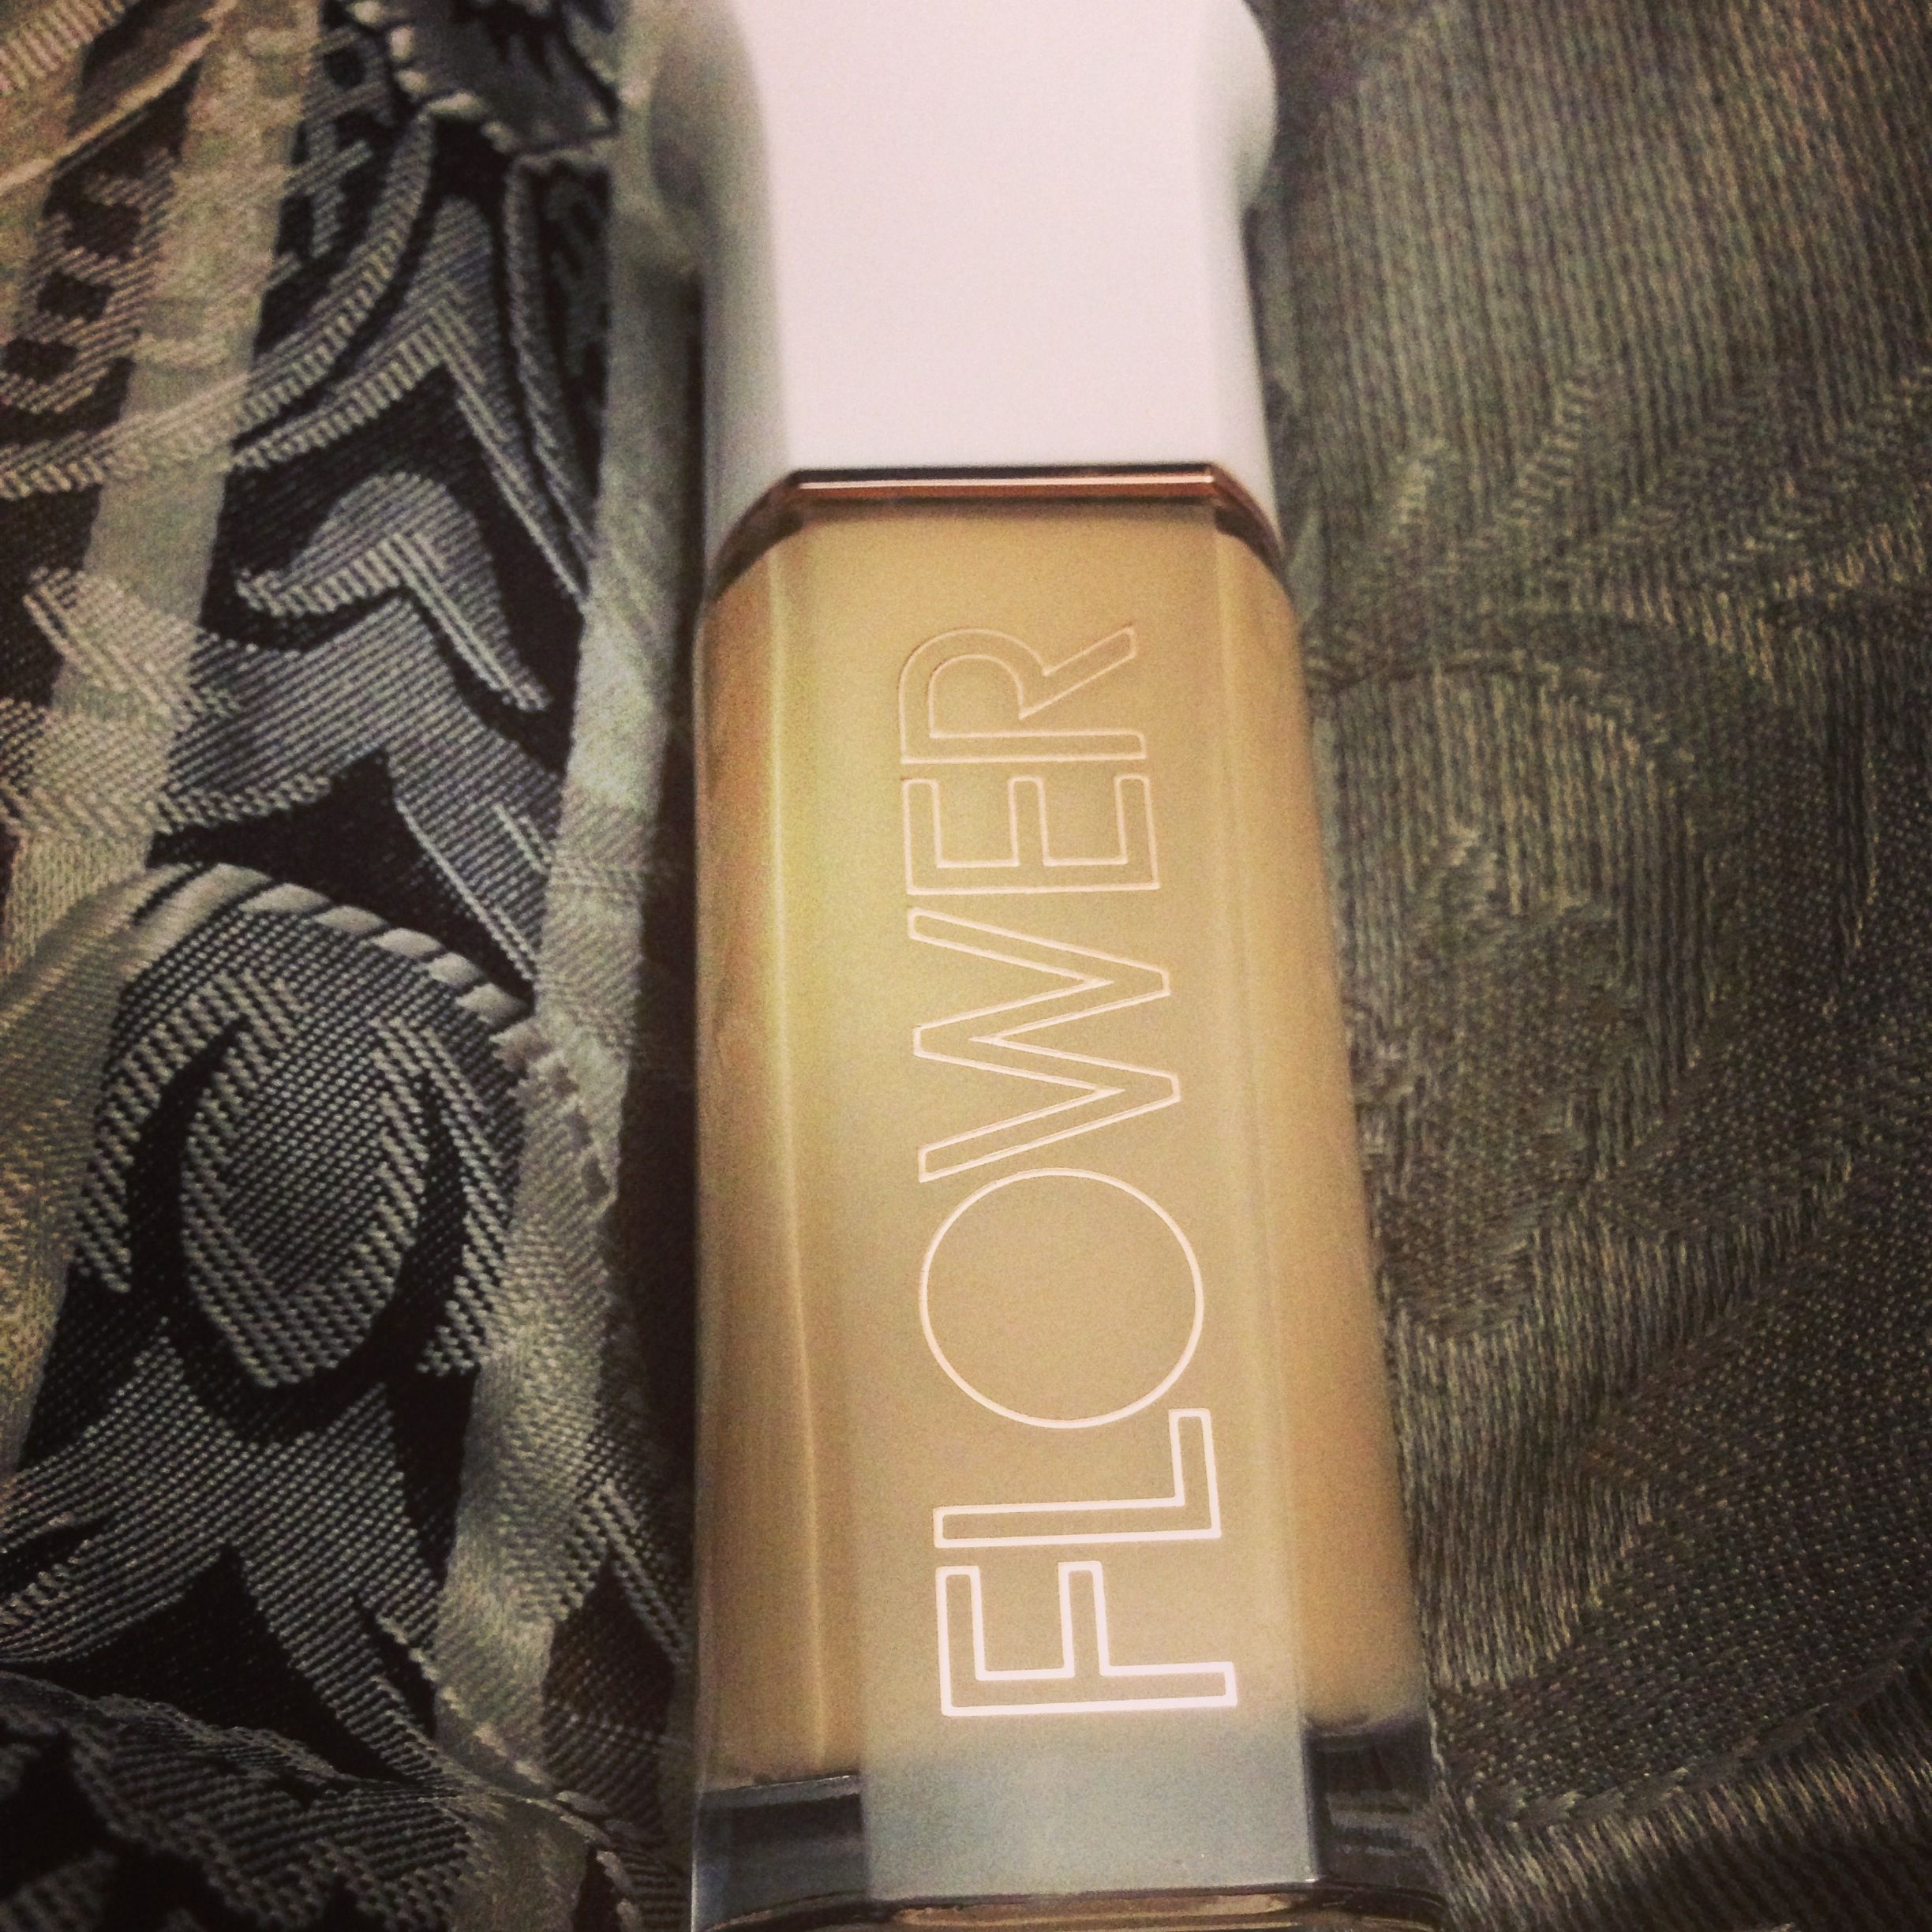 Drew barrymores new flower beauty makeup line foundation in the drew barrymores new flower beauty makeup line foundation in the 6th shade mac equivalent to nc 25 izmirmasajfo